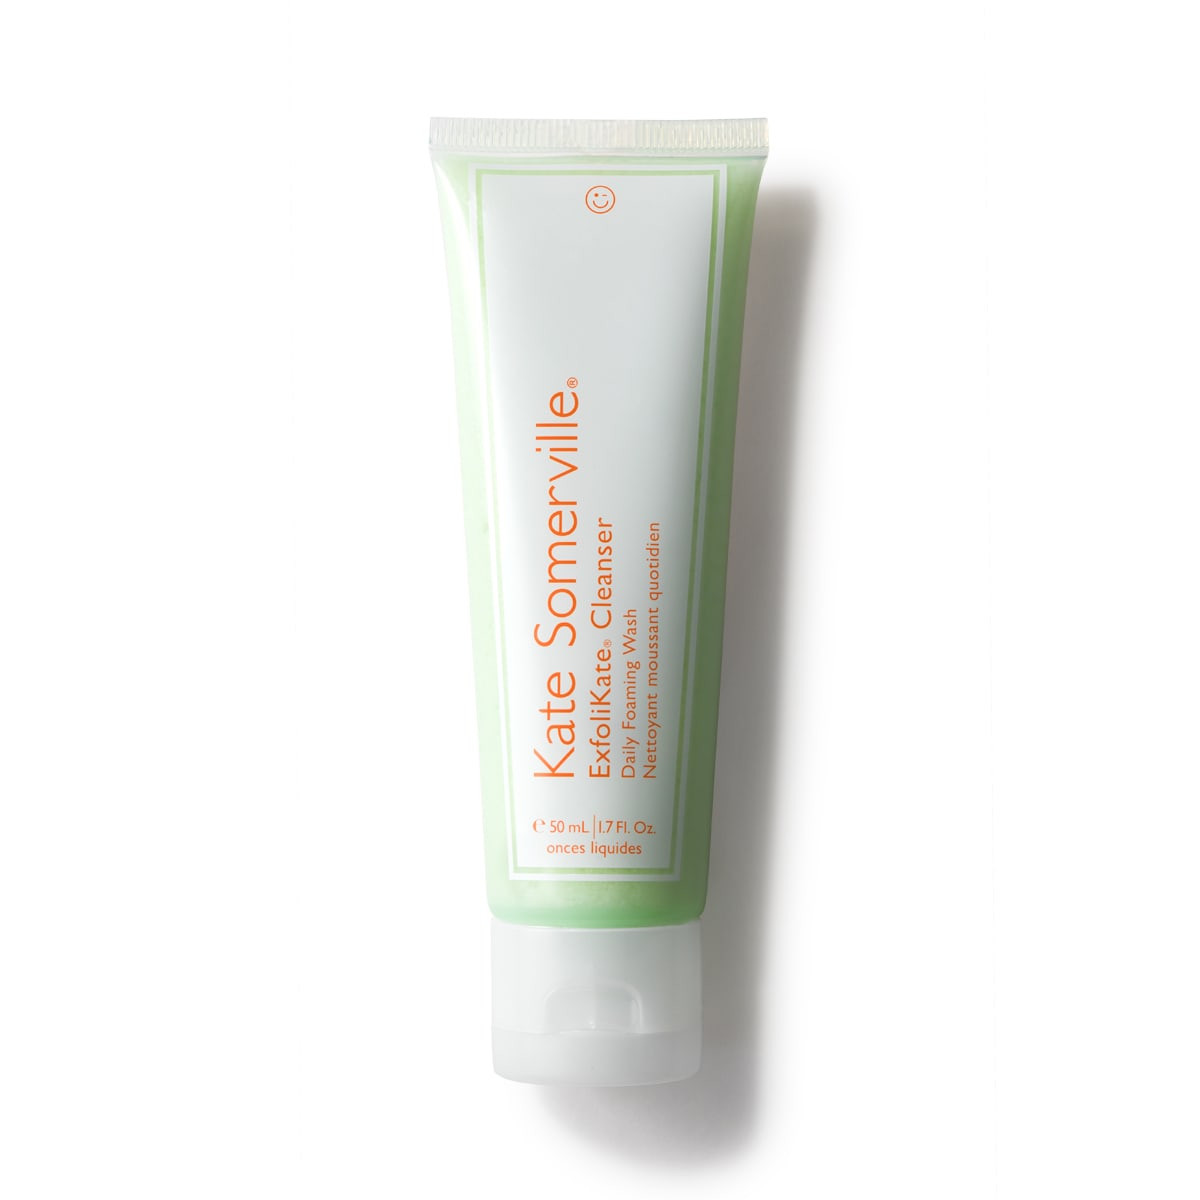 Kate Somerville ExfoliKate Facial Cleanser